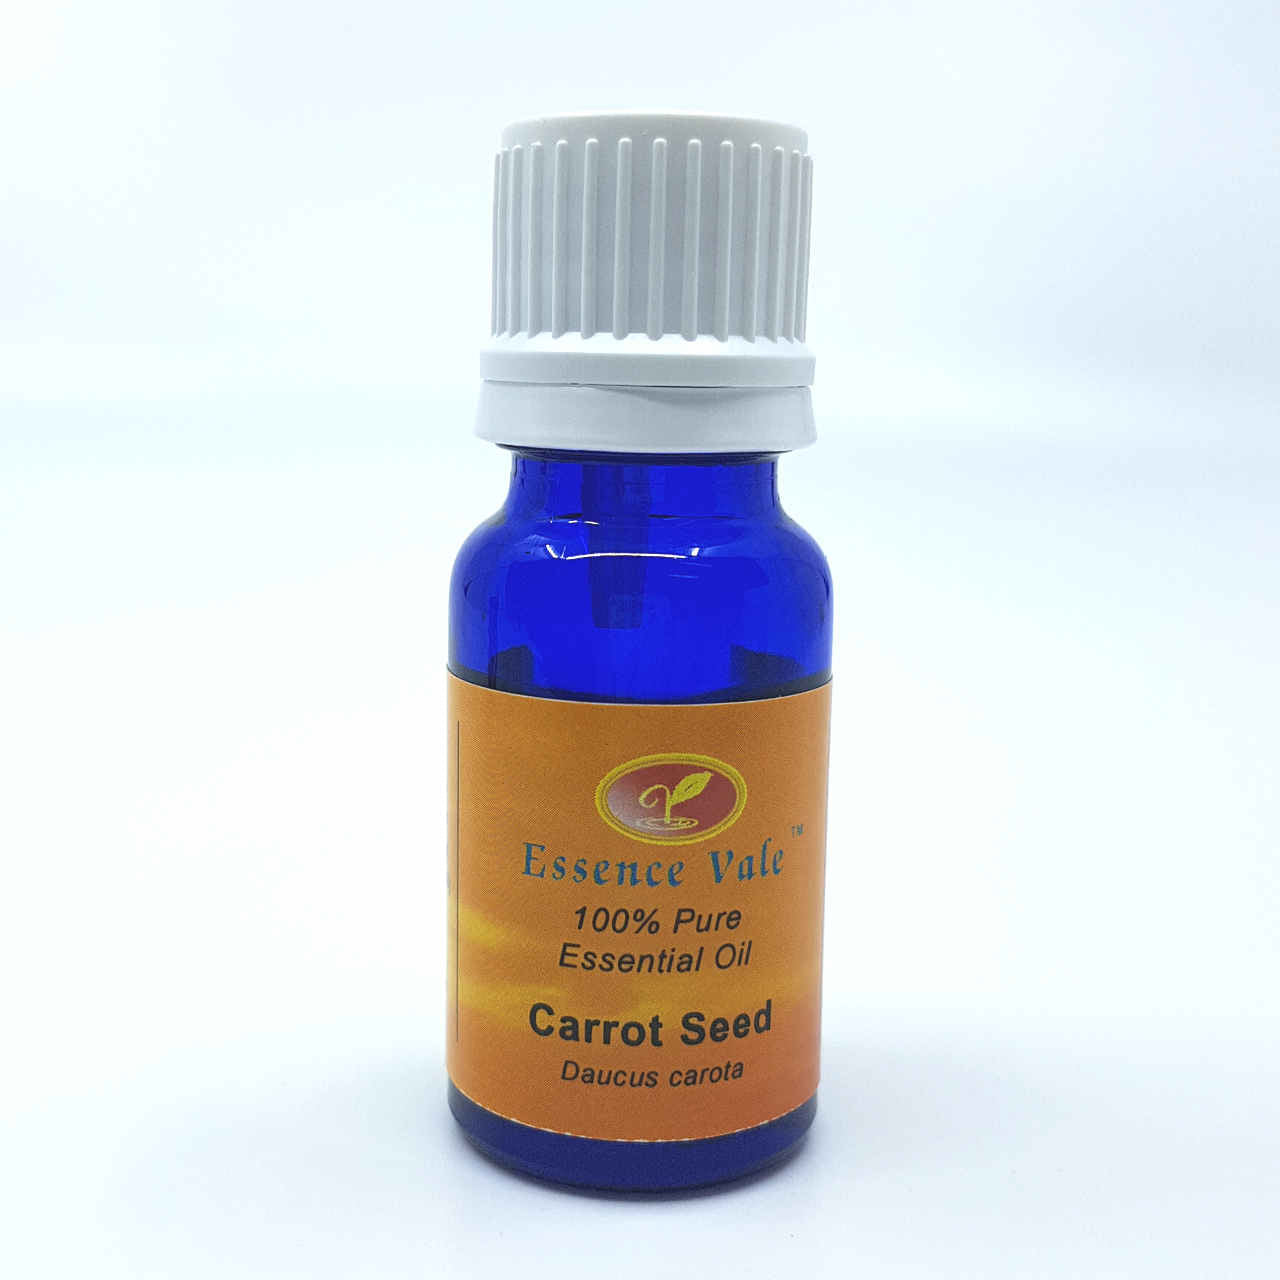 ESSENCE VALE 100% Pure Carrot Seed Essential Oil